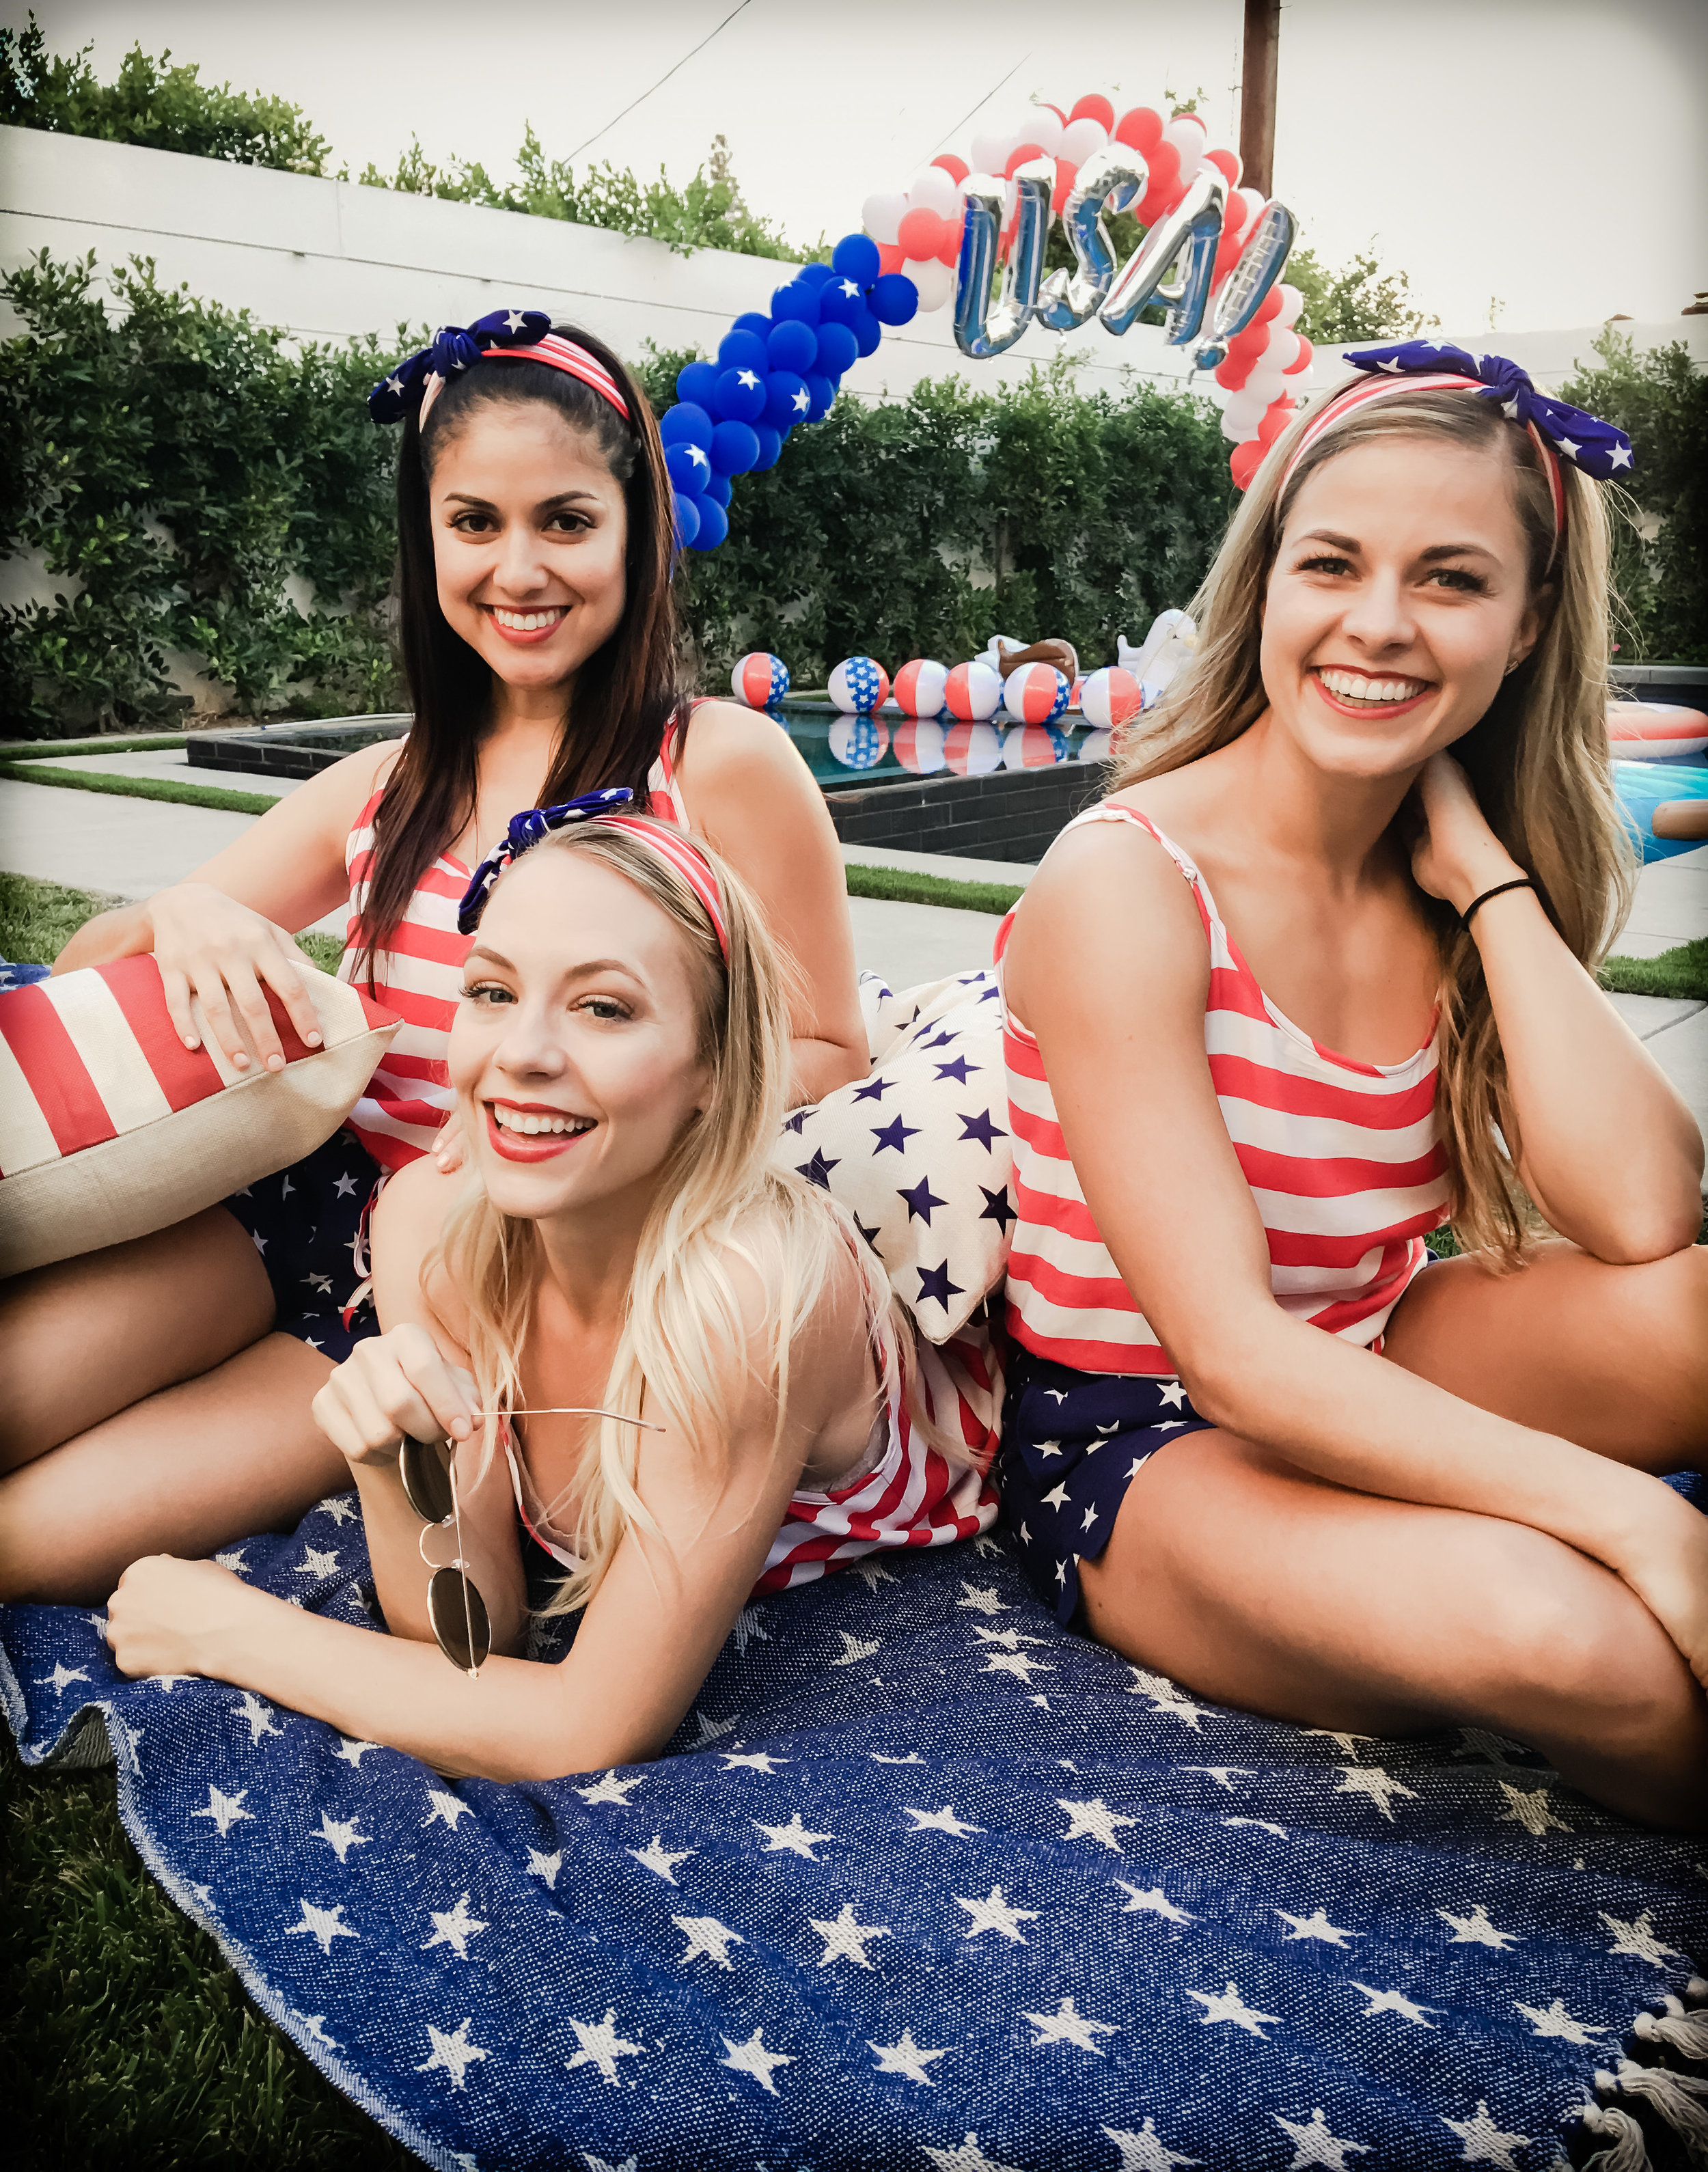 American Citizenship Fourth of July Event Planner Los Angeles (8 of 8).jpg